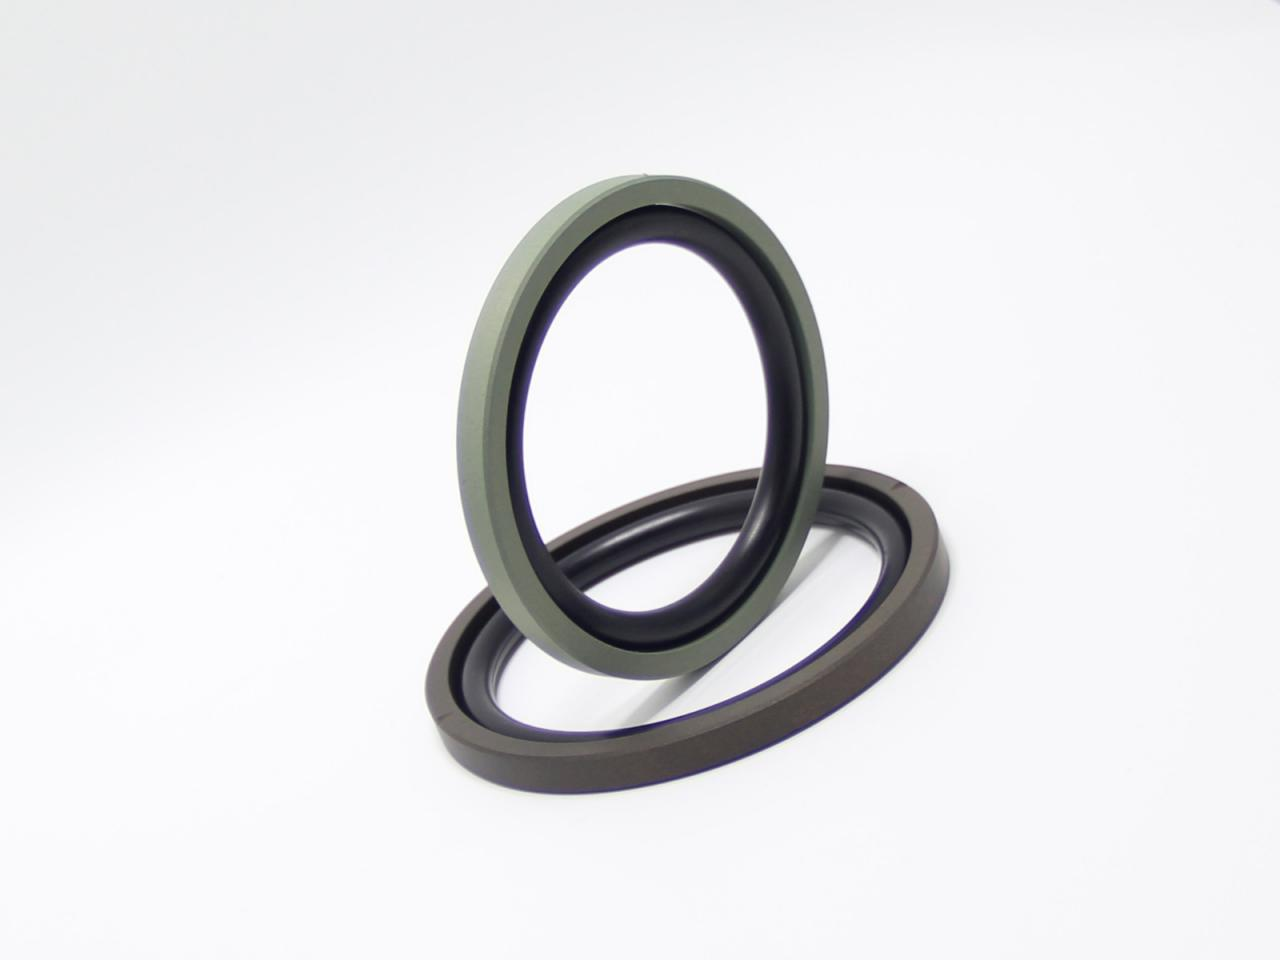 DSH-Pneumatic Piston Seal Manufacture | Spgo - Ptfe Filled With-4